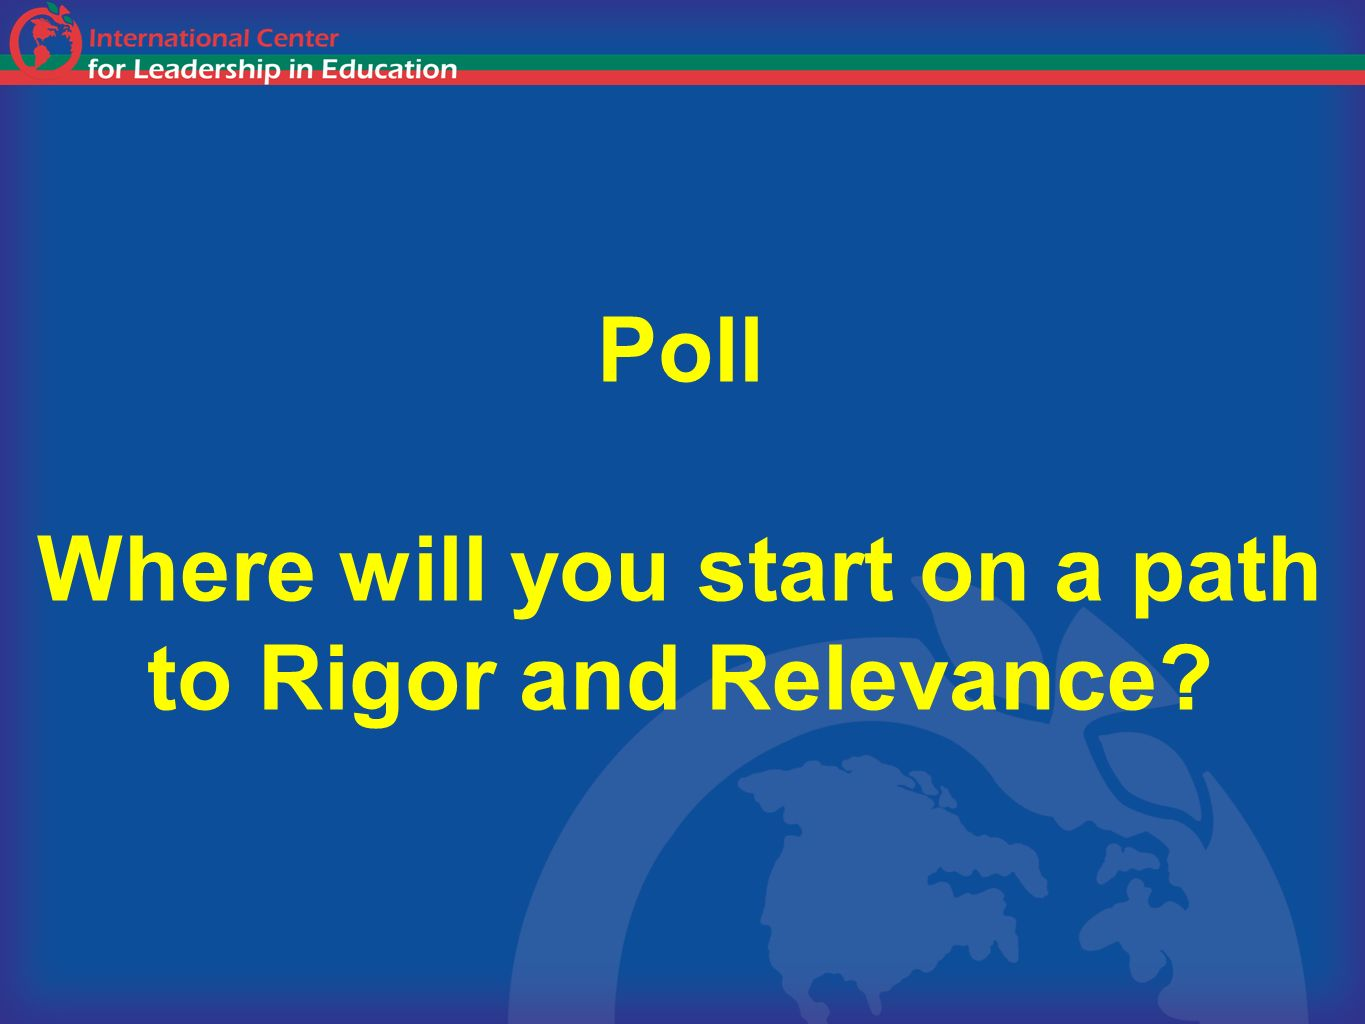 Poll Where will you start on a path to Rigor and Relevance?